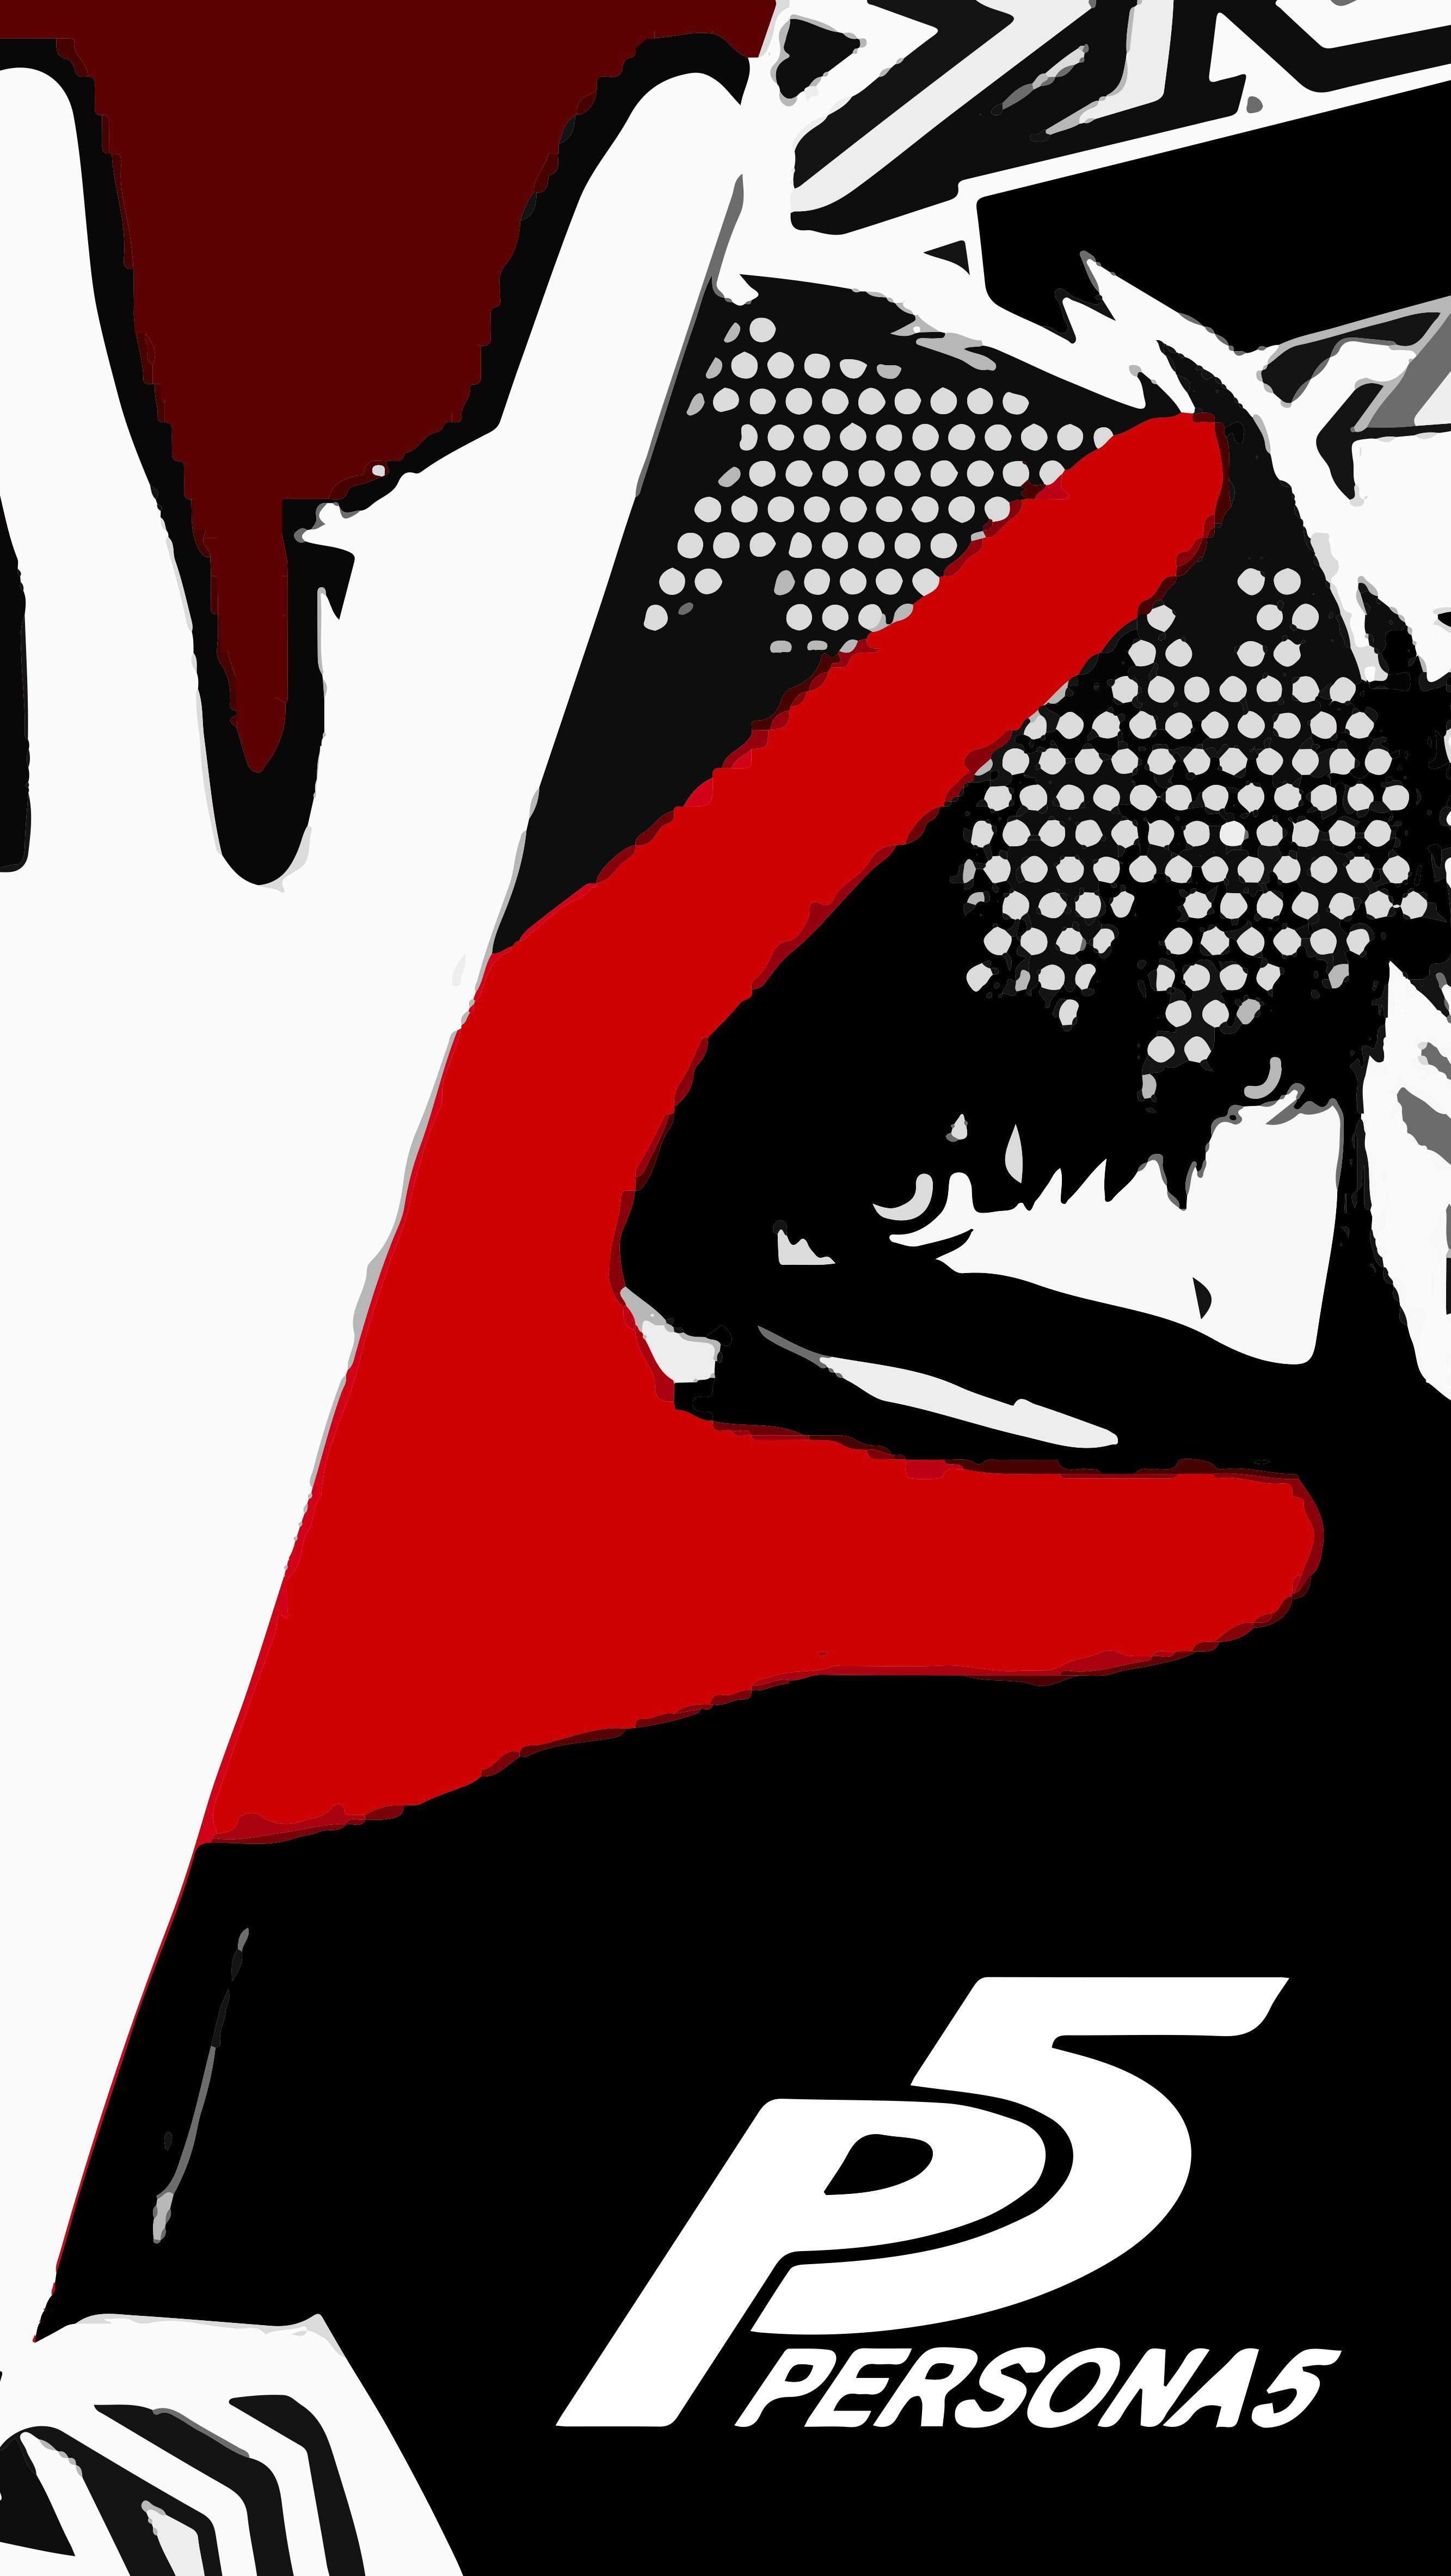 Persona 5 Iphone Wallpapers Top Free Persona 5 Iphone Backgrounds Wallpaperaccess